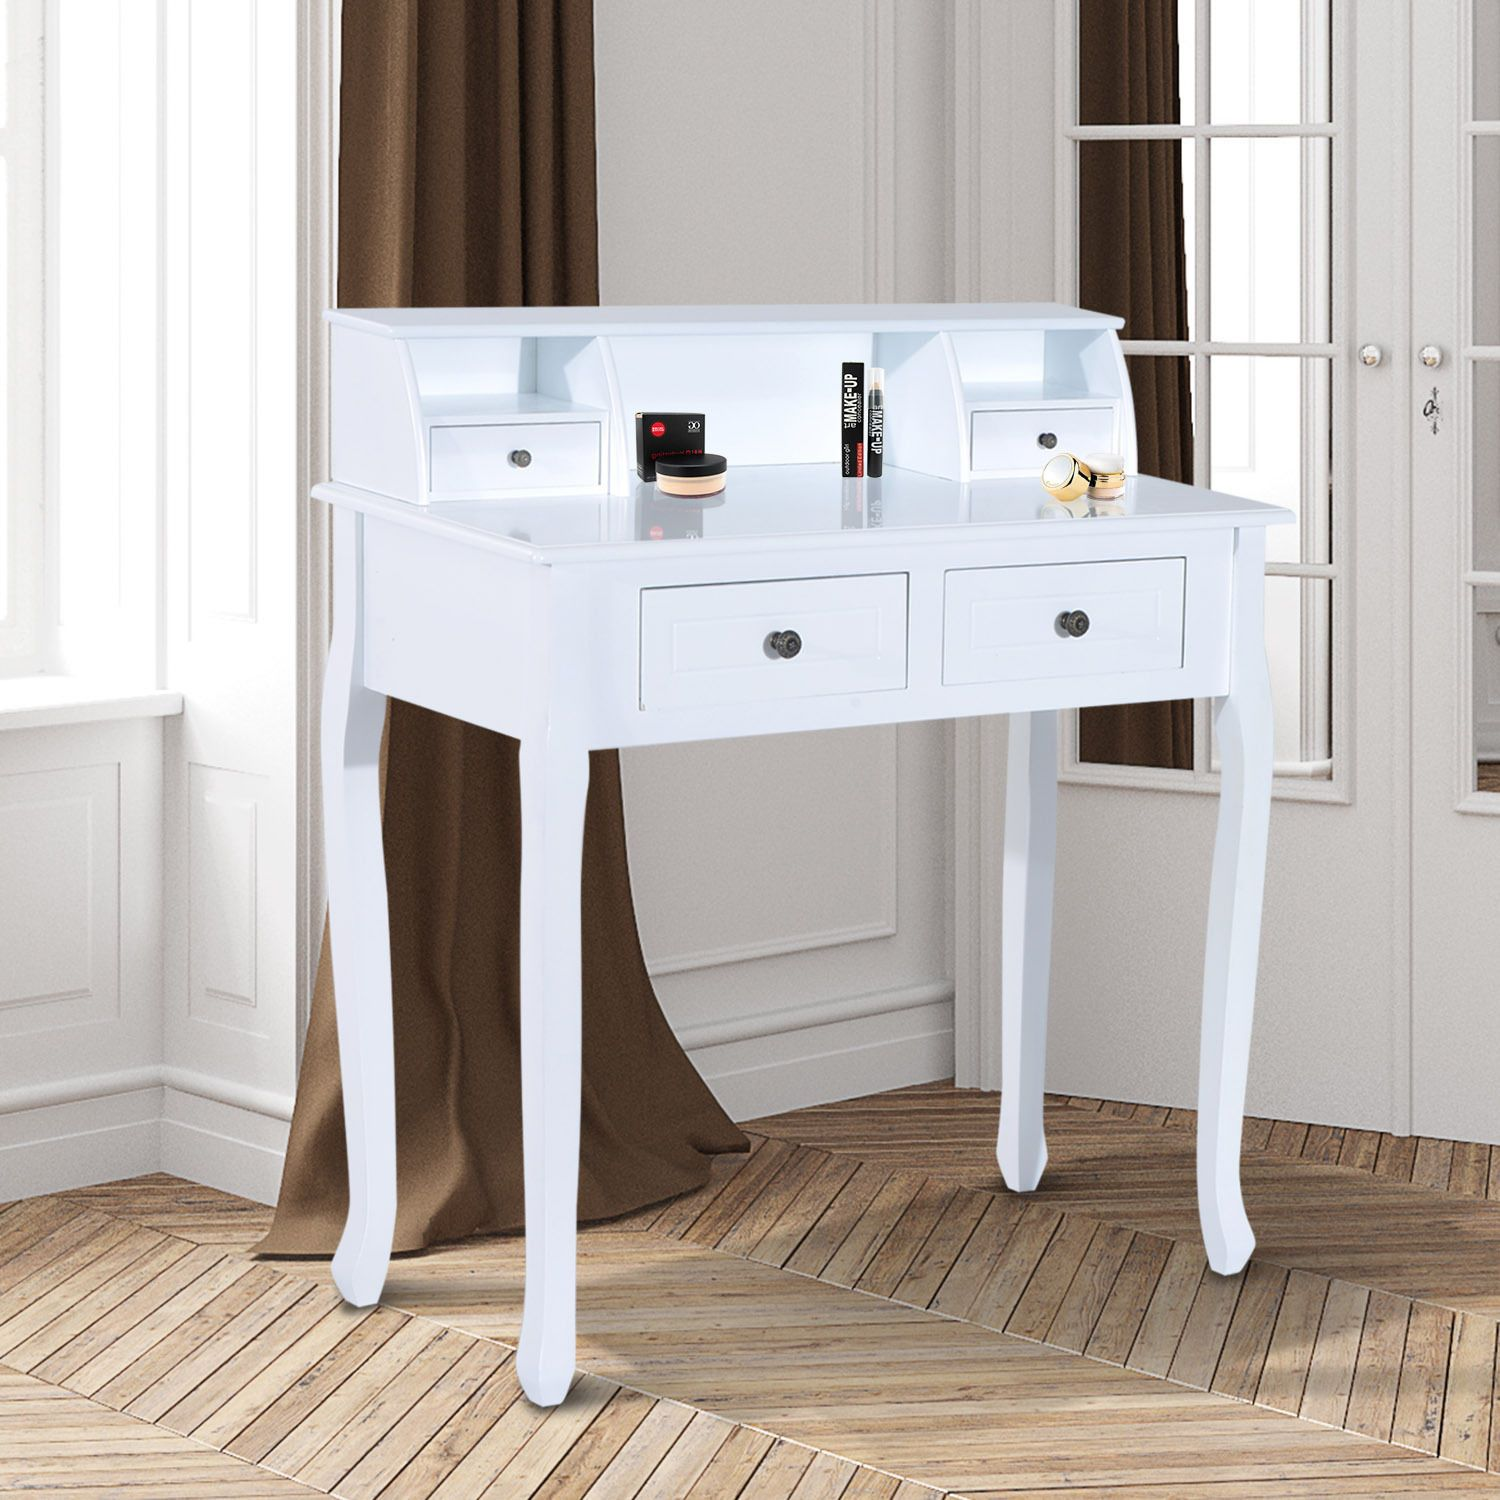 ideas walls stool tables nice brick dressing furniture flowers and drawers with drawer mirror also table